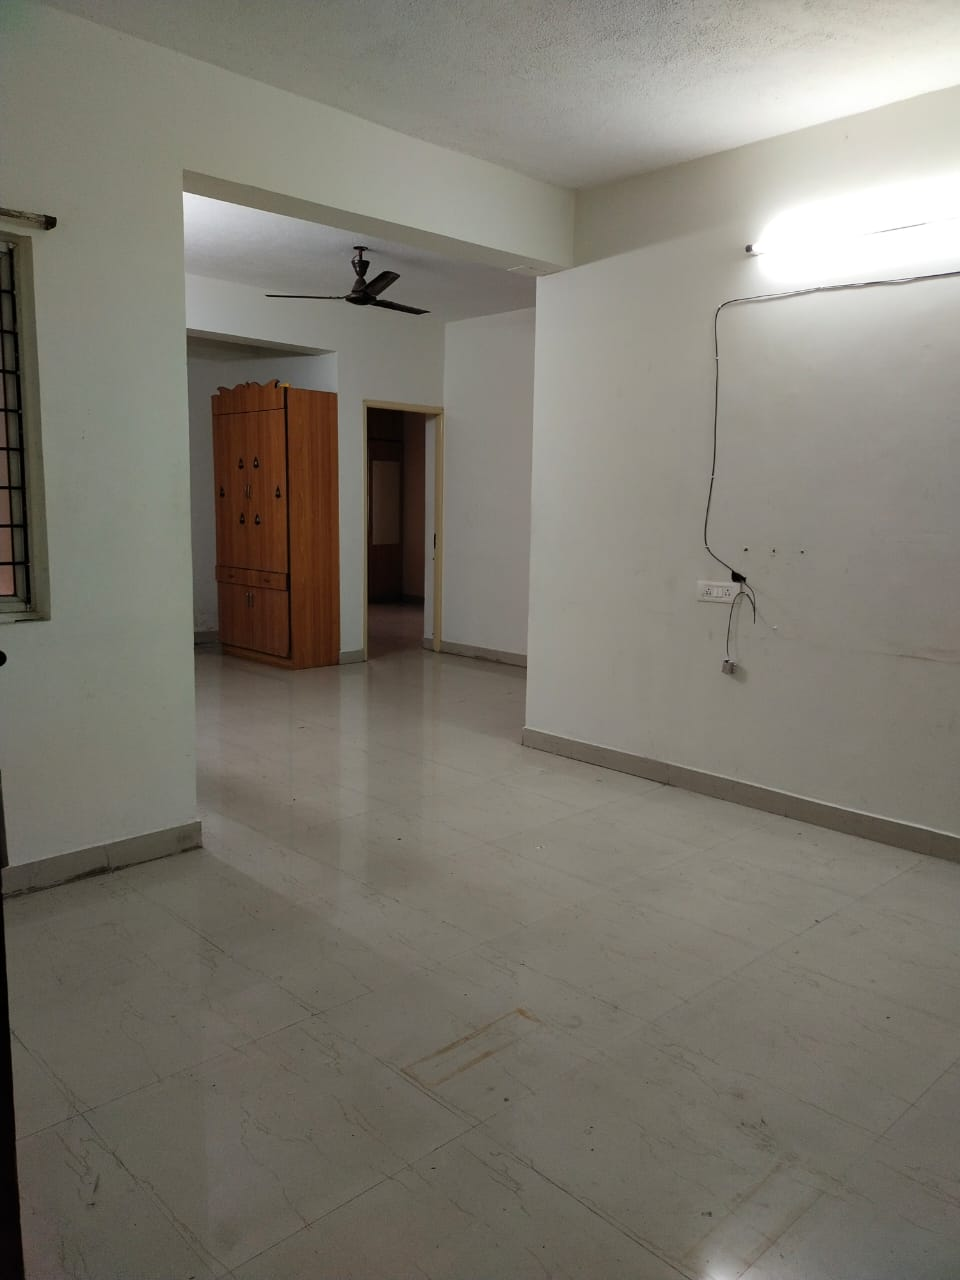 3 BHK house for lease at Sholinganallur for Rs.10 lakhs